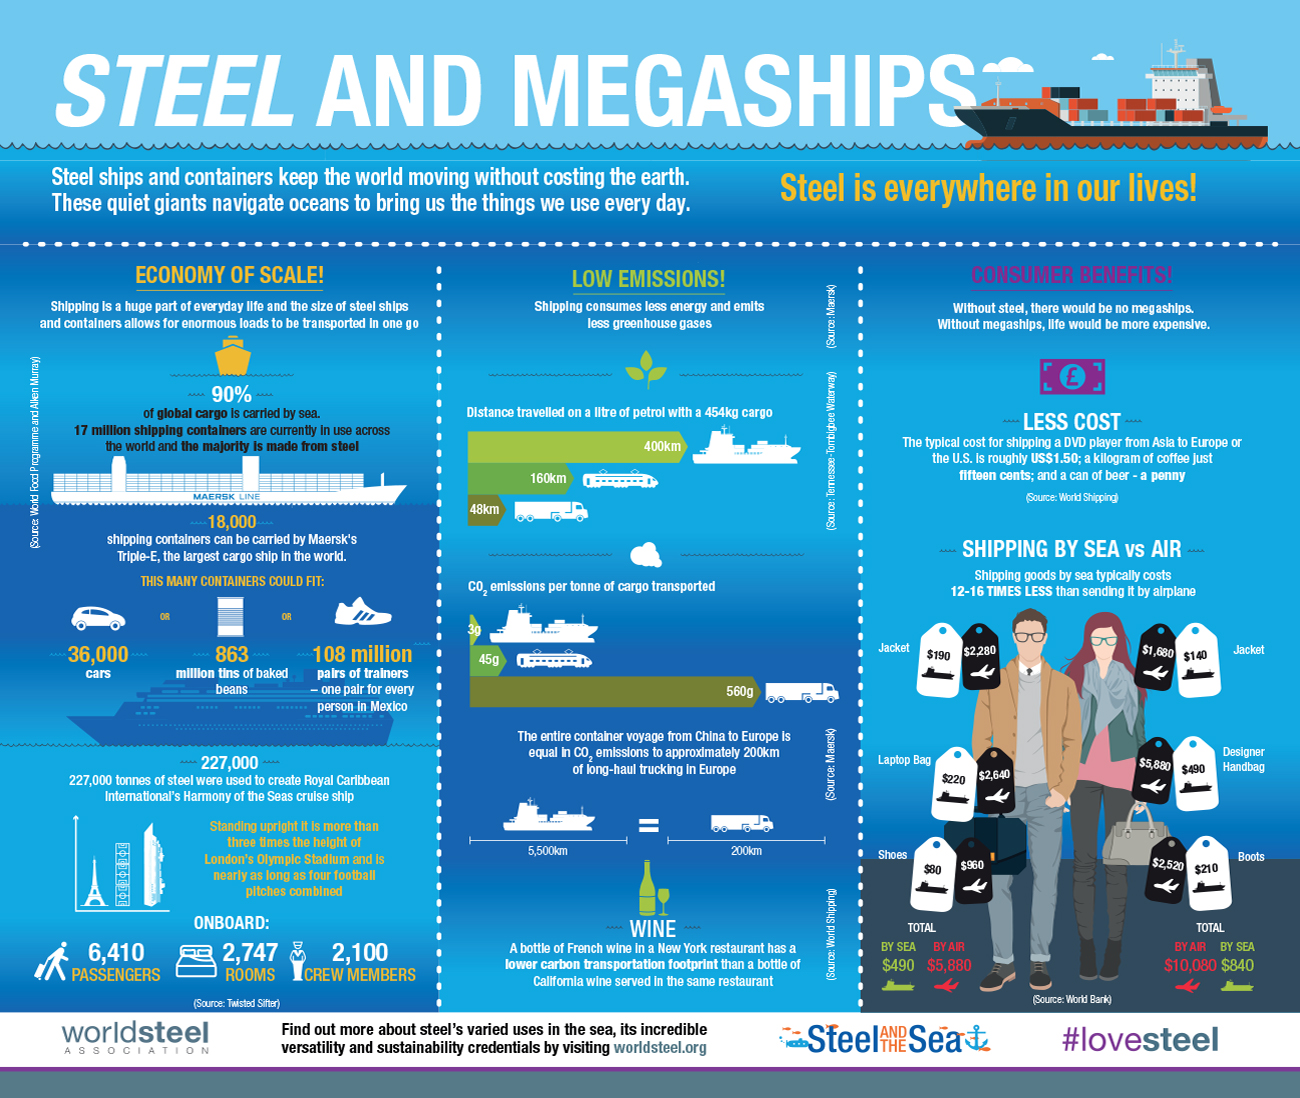 10 Ways Steel is Used at Sea